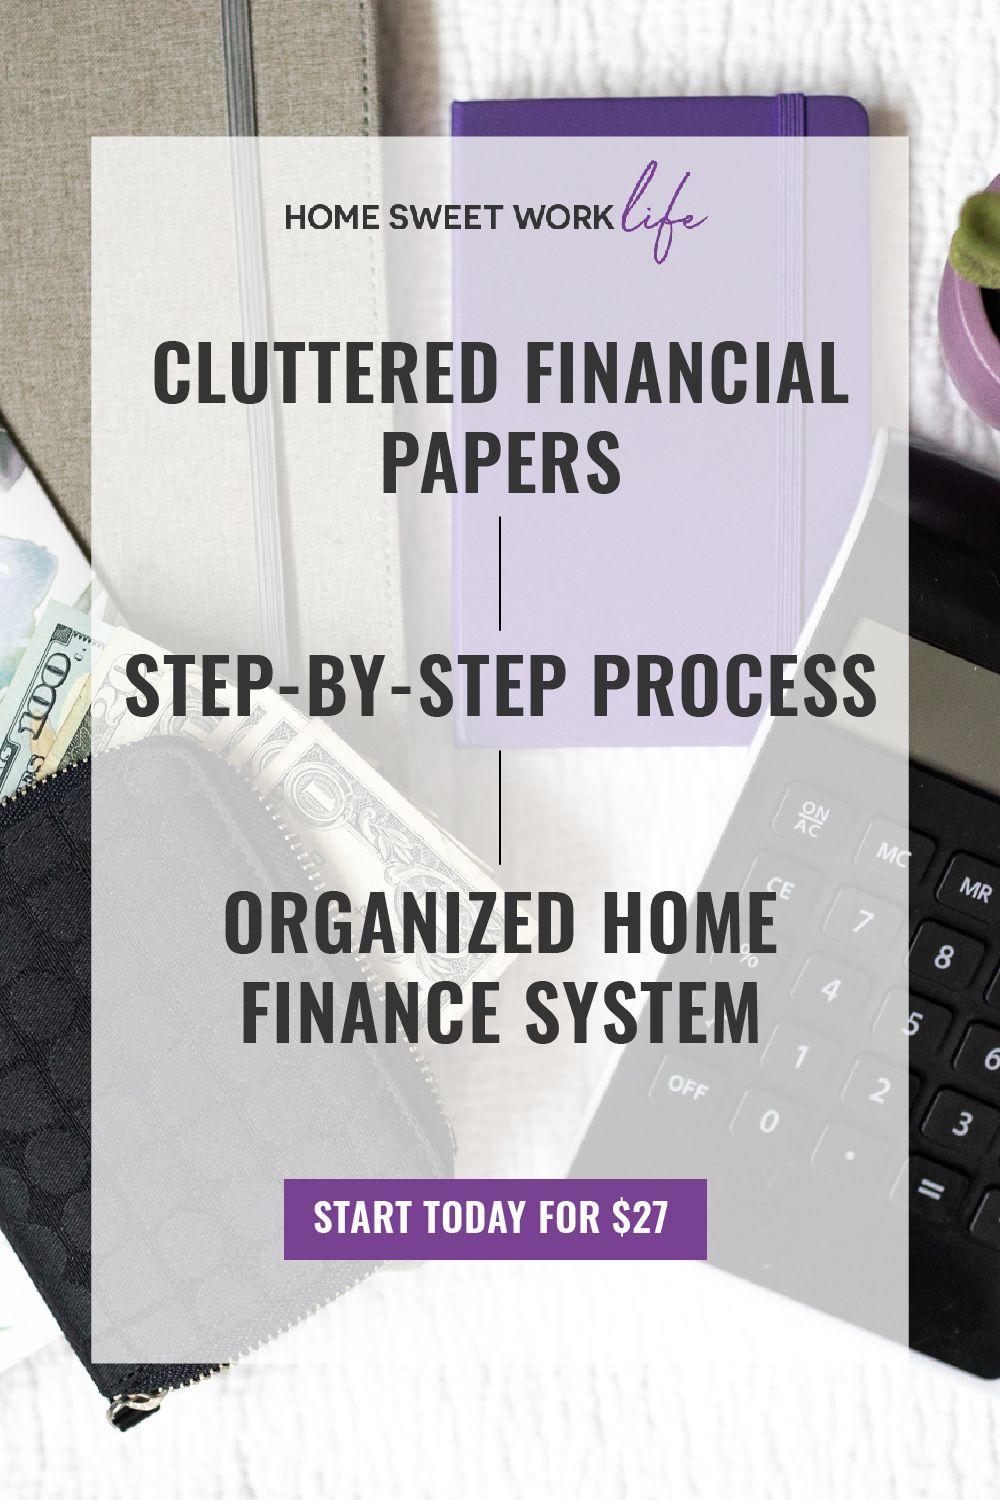 Take Your Cluttered Financial Papers & Build an Organized